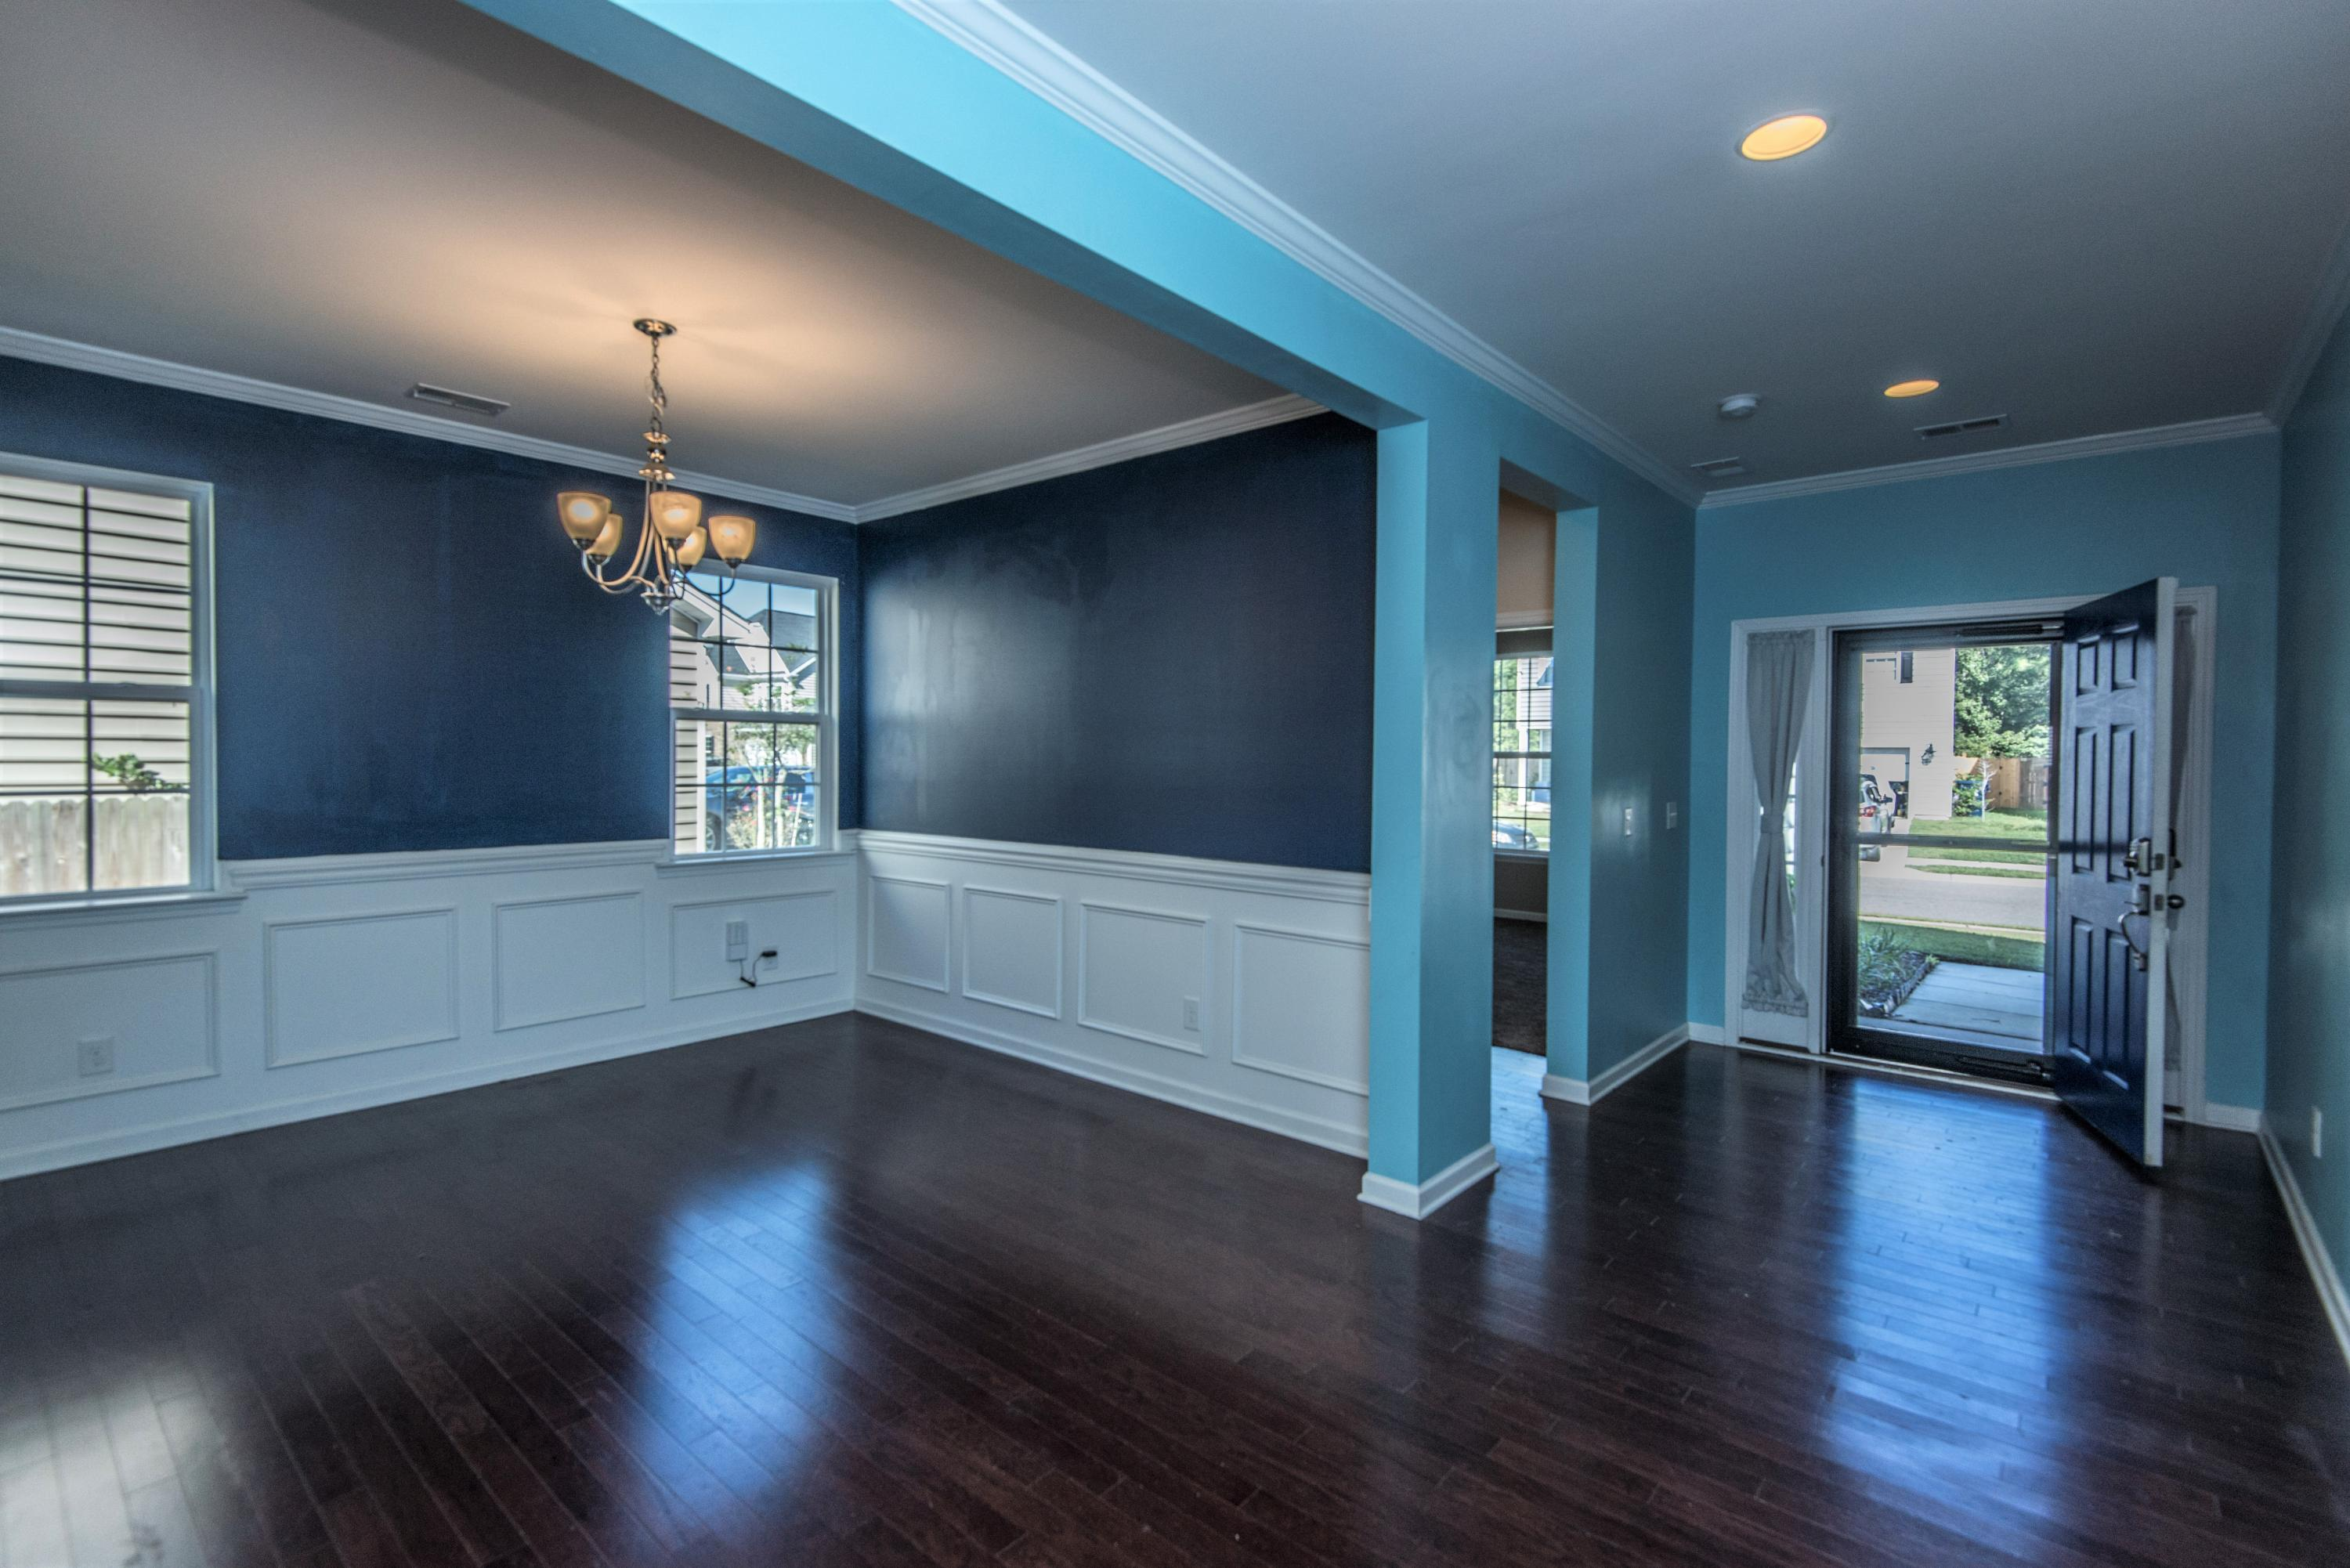 Wentworth Hall Homes For Sale - 216 Wexford, Summerville, SC - 7